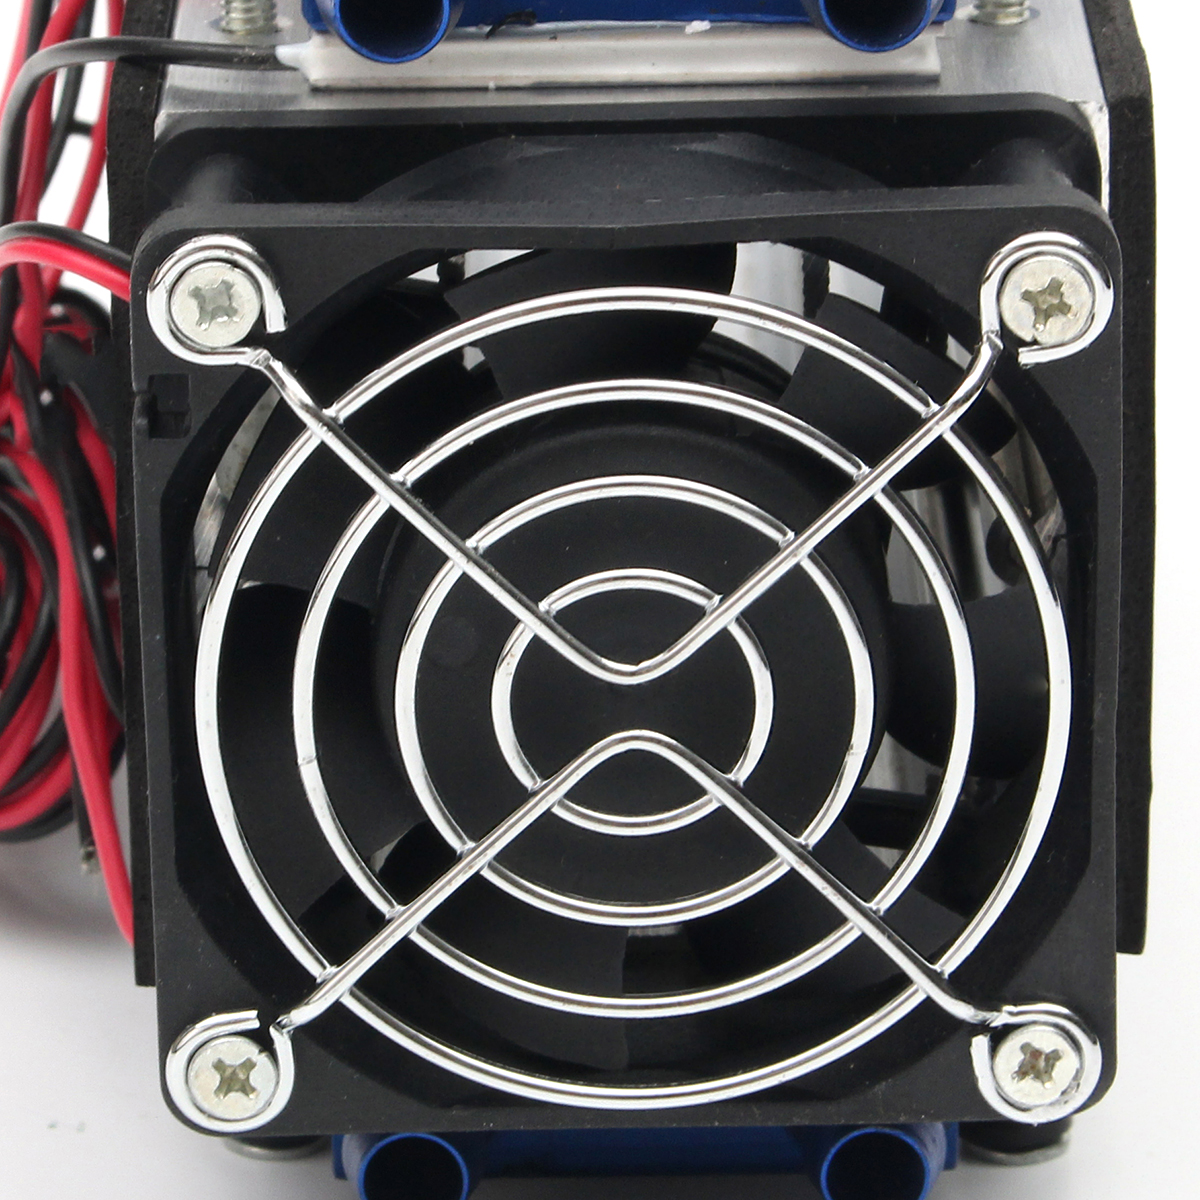 DC12V 60A 576W 8 Chip TEC1-12706 Thermoelectric Cooler Radiator Air Cooling Equipment